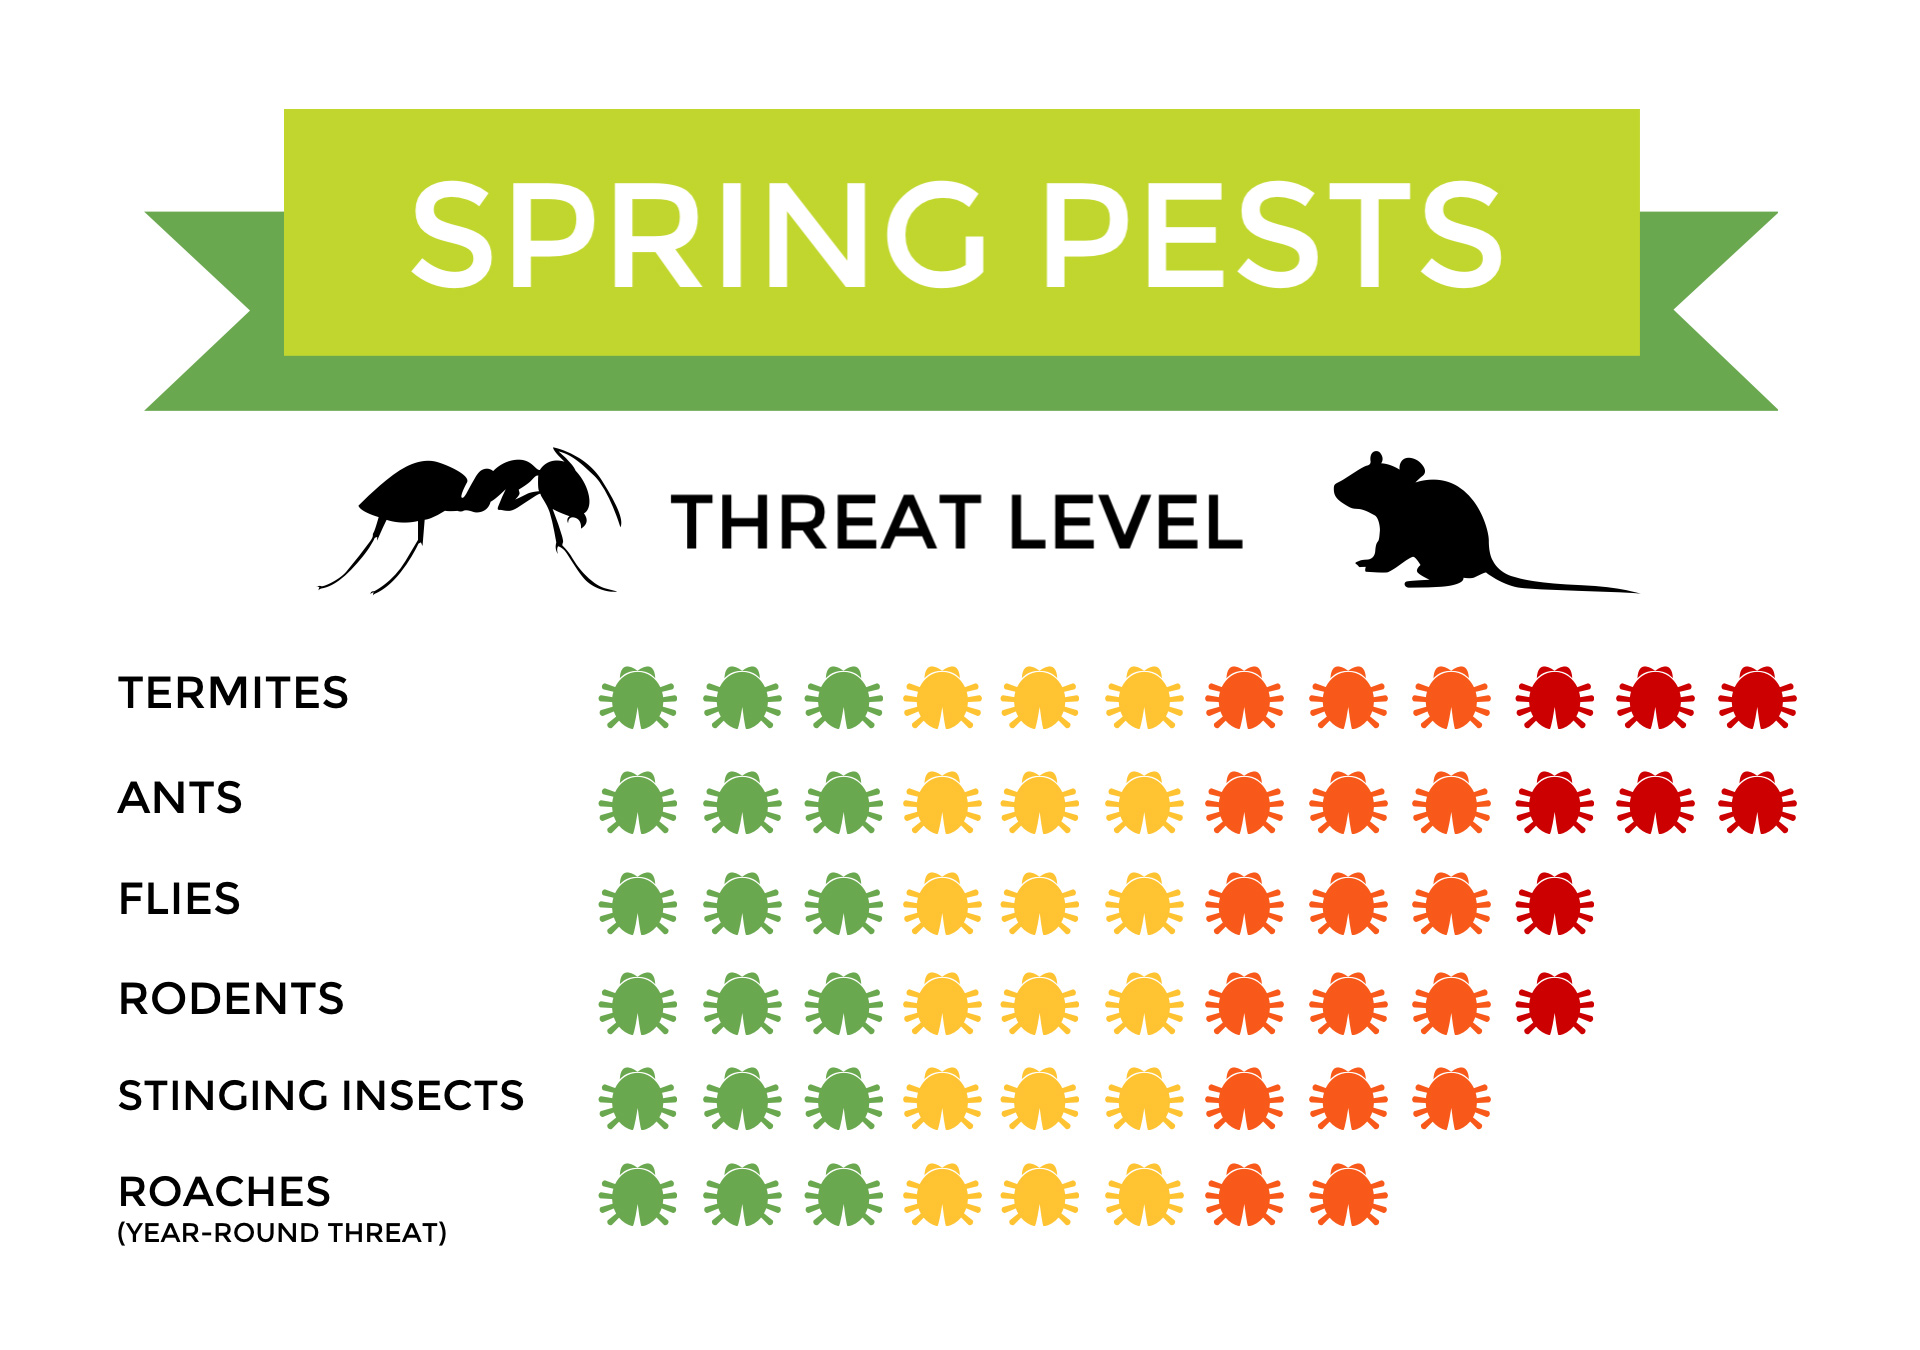 Spring Pests - Threat Level